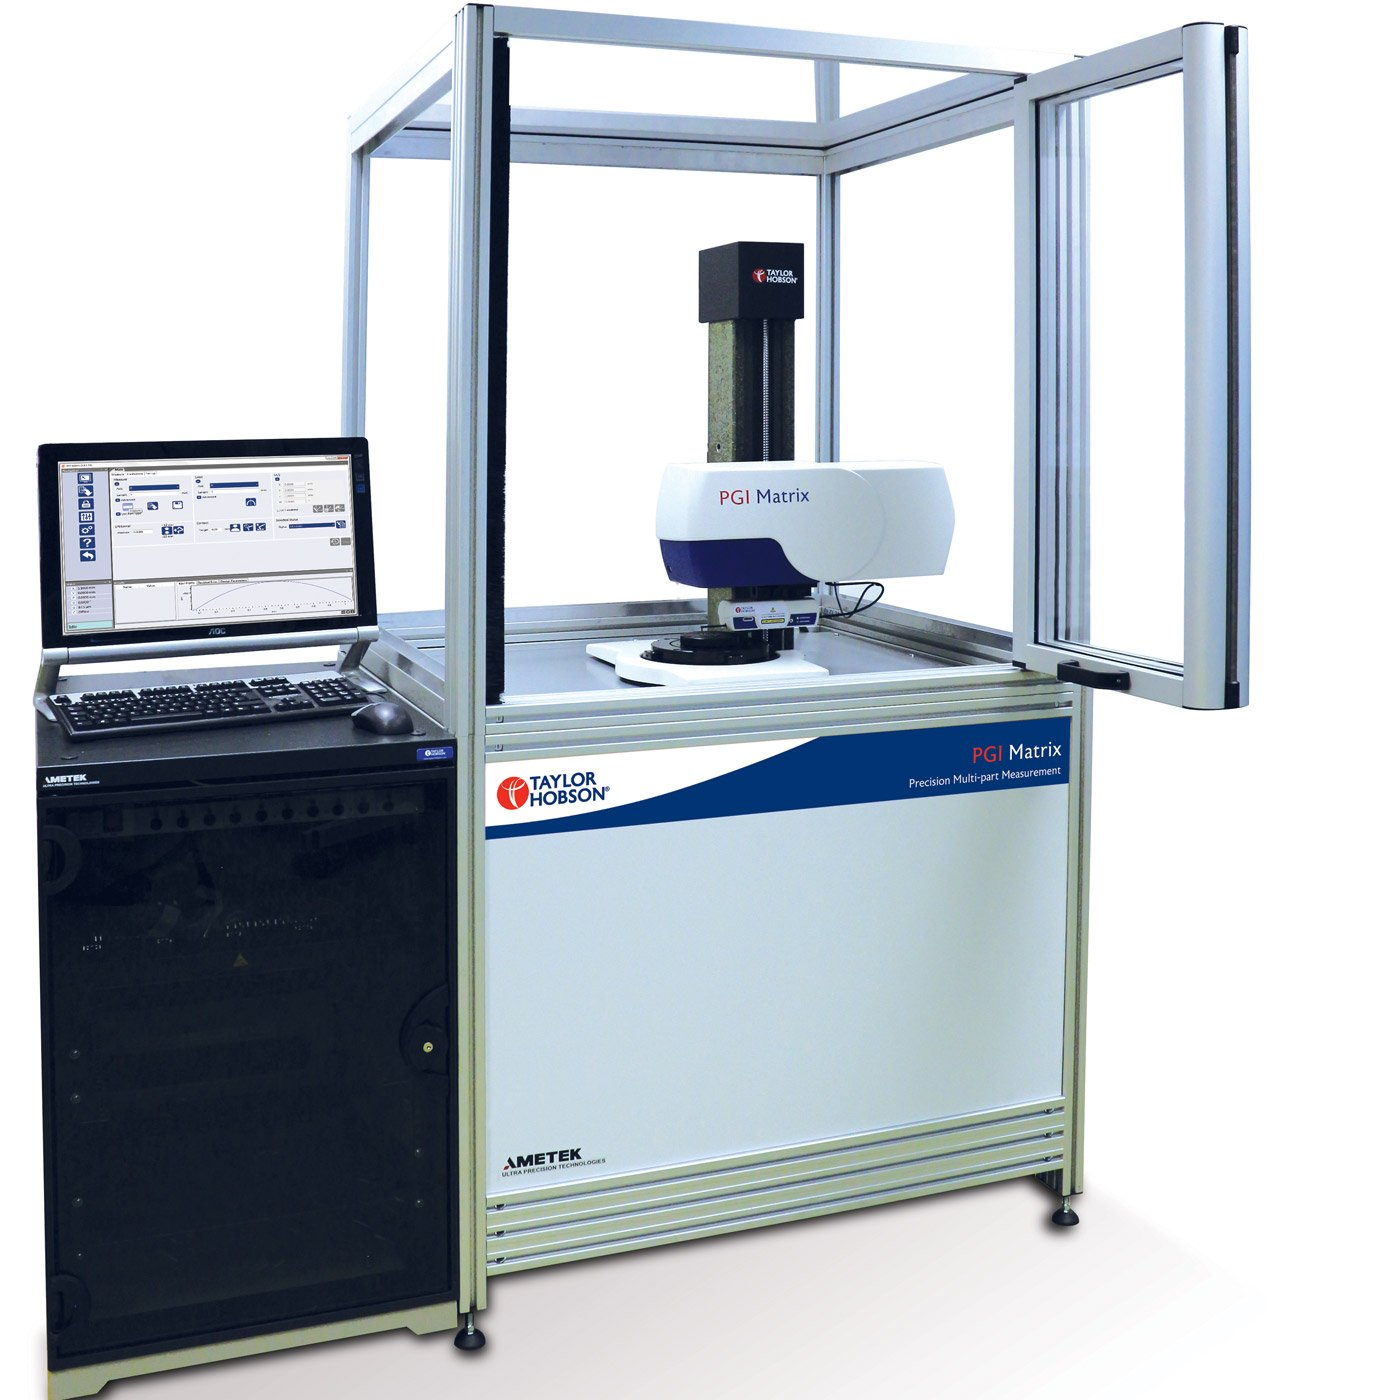 The Pgi Matrix Is Perfect All Around Instrument For Fully Automated 2d And Form Metrology Of Optics Ranging From Small Mobile Phone Lenses To Large